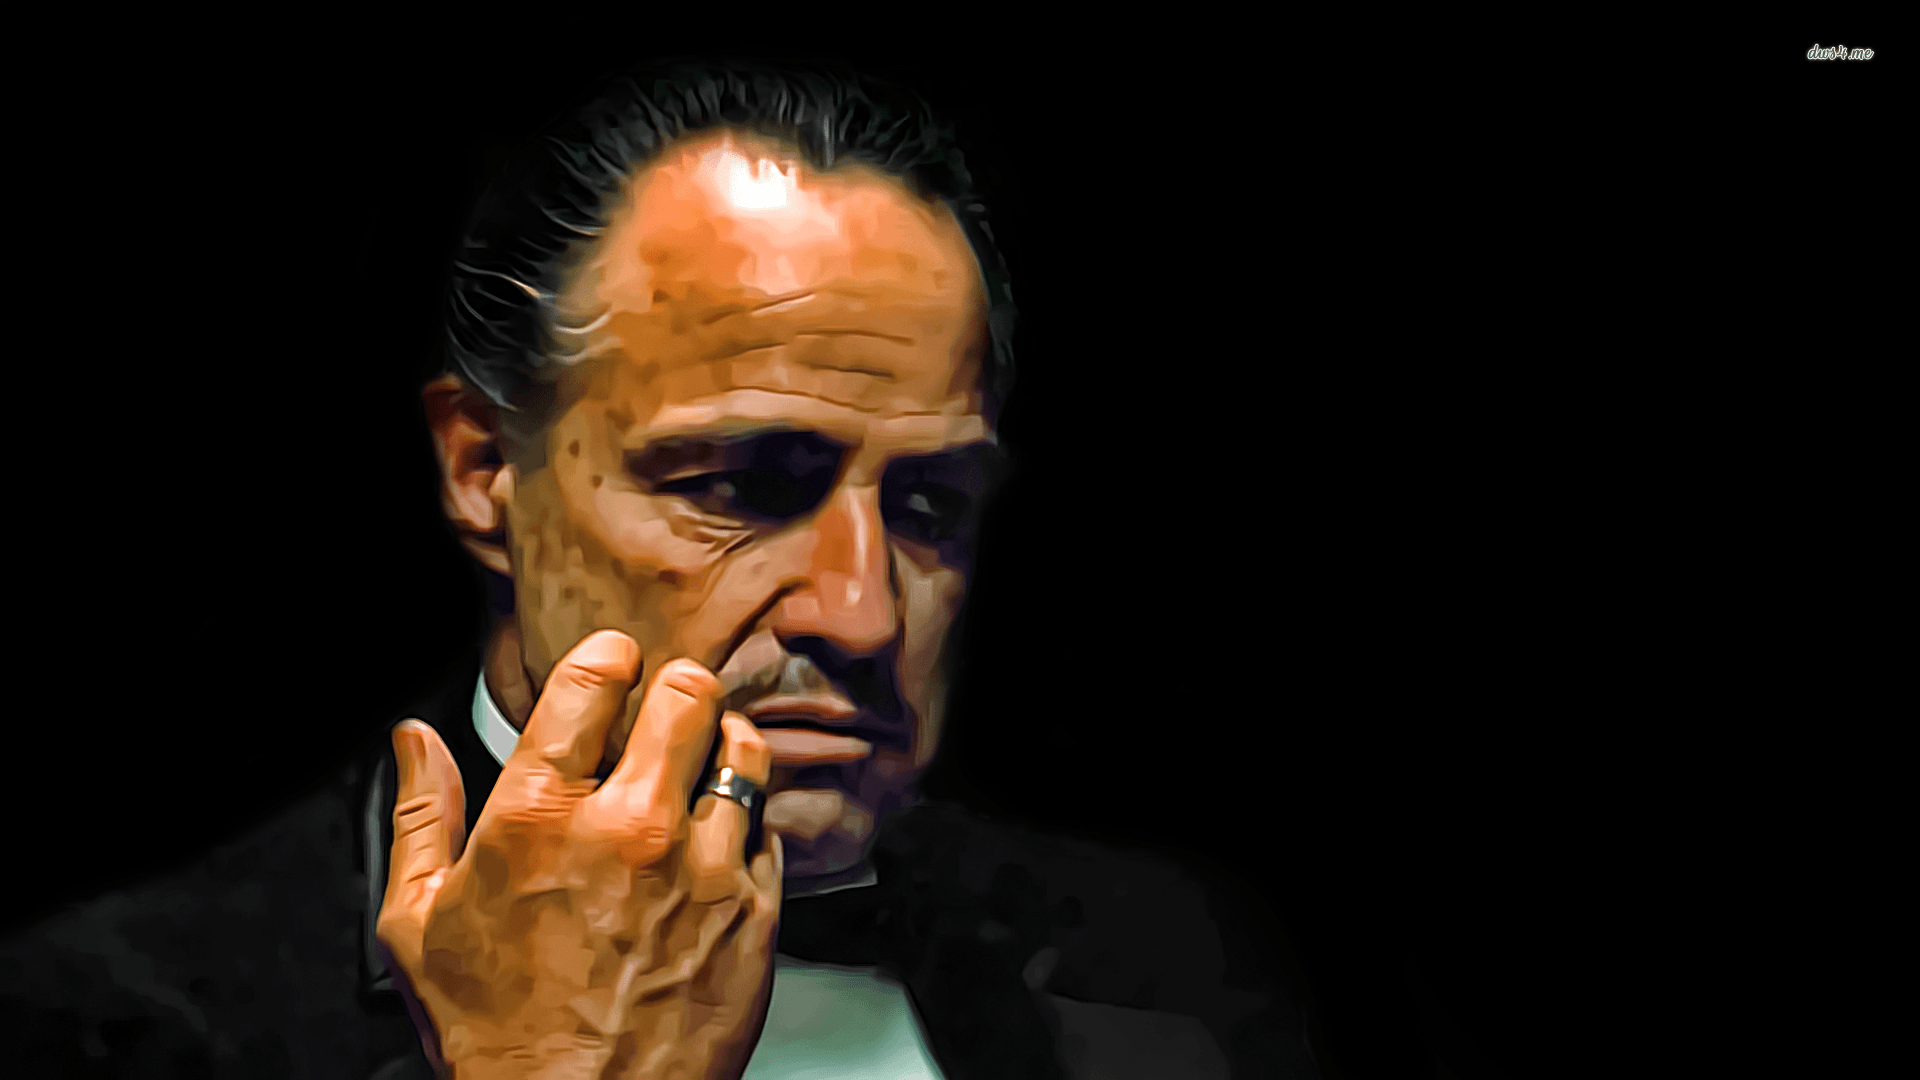 Godfather Wallpapers - Wallpaper Cave